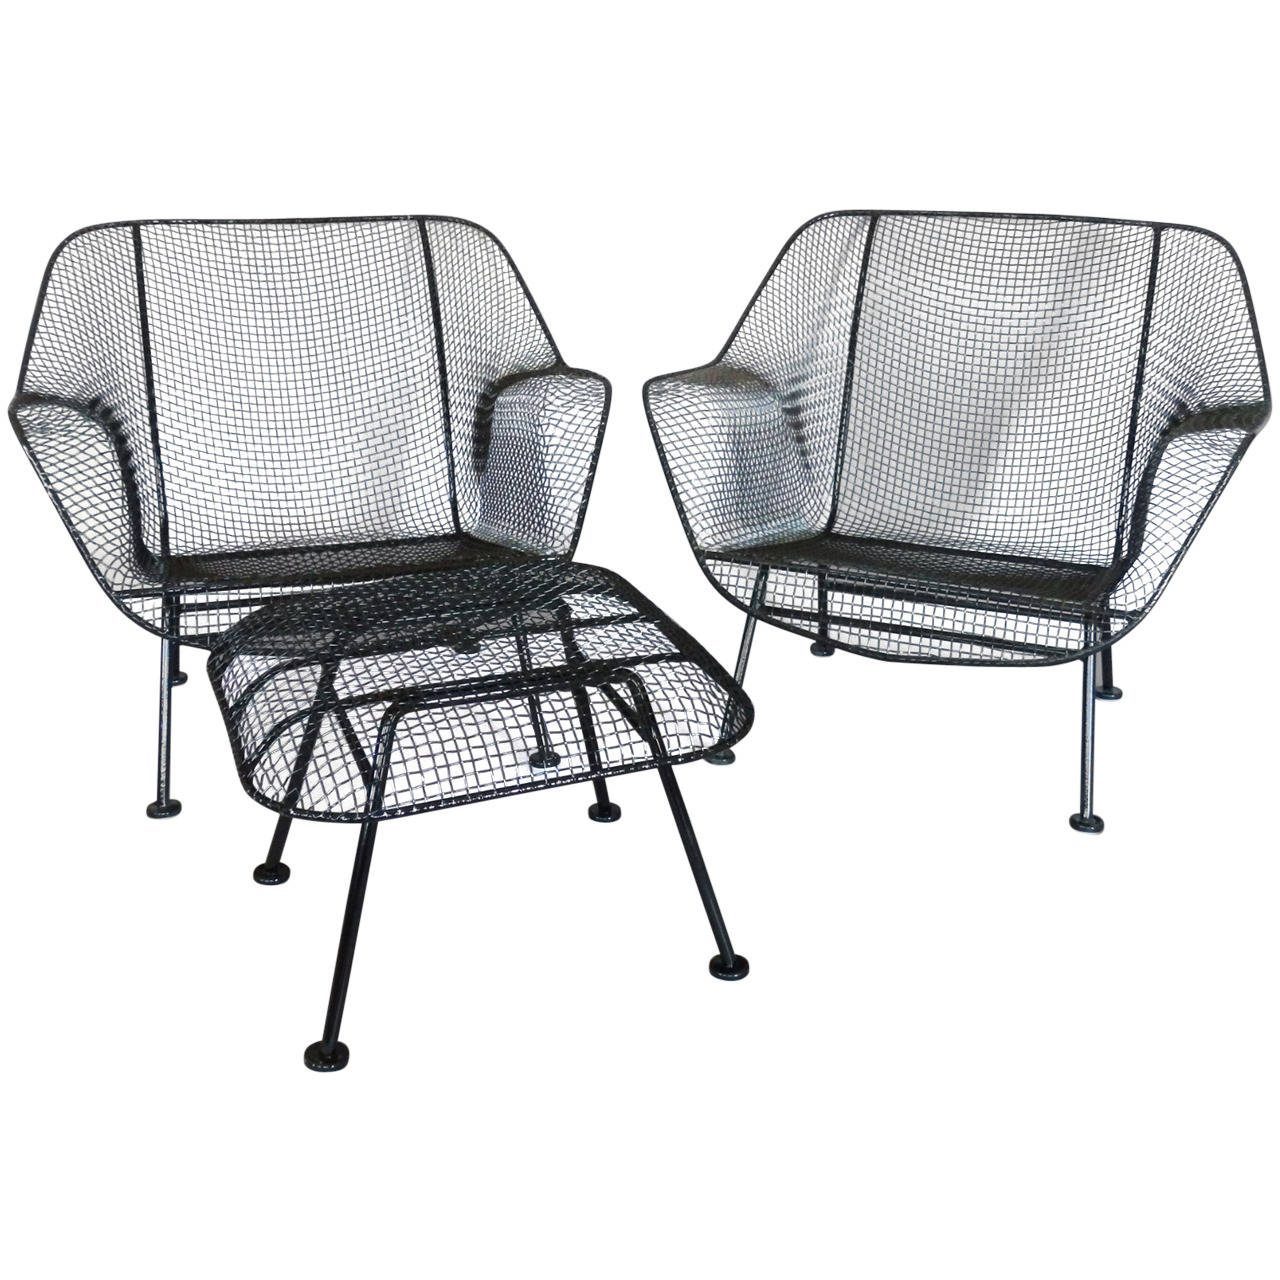 iron chaise lounge chairs hammock sling with chair pad pair of woodard wrought mesh at